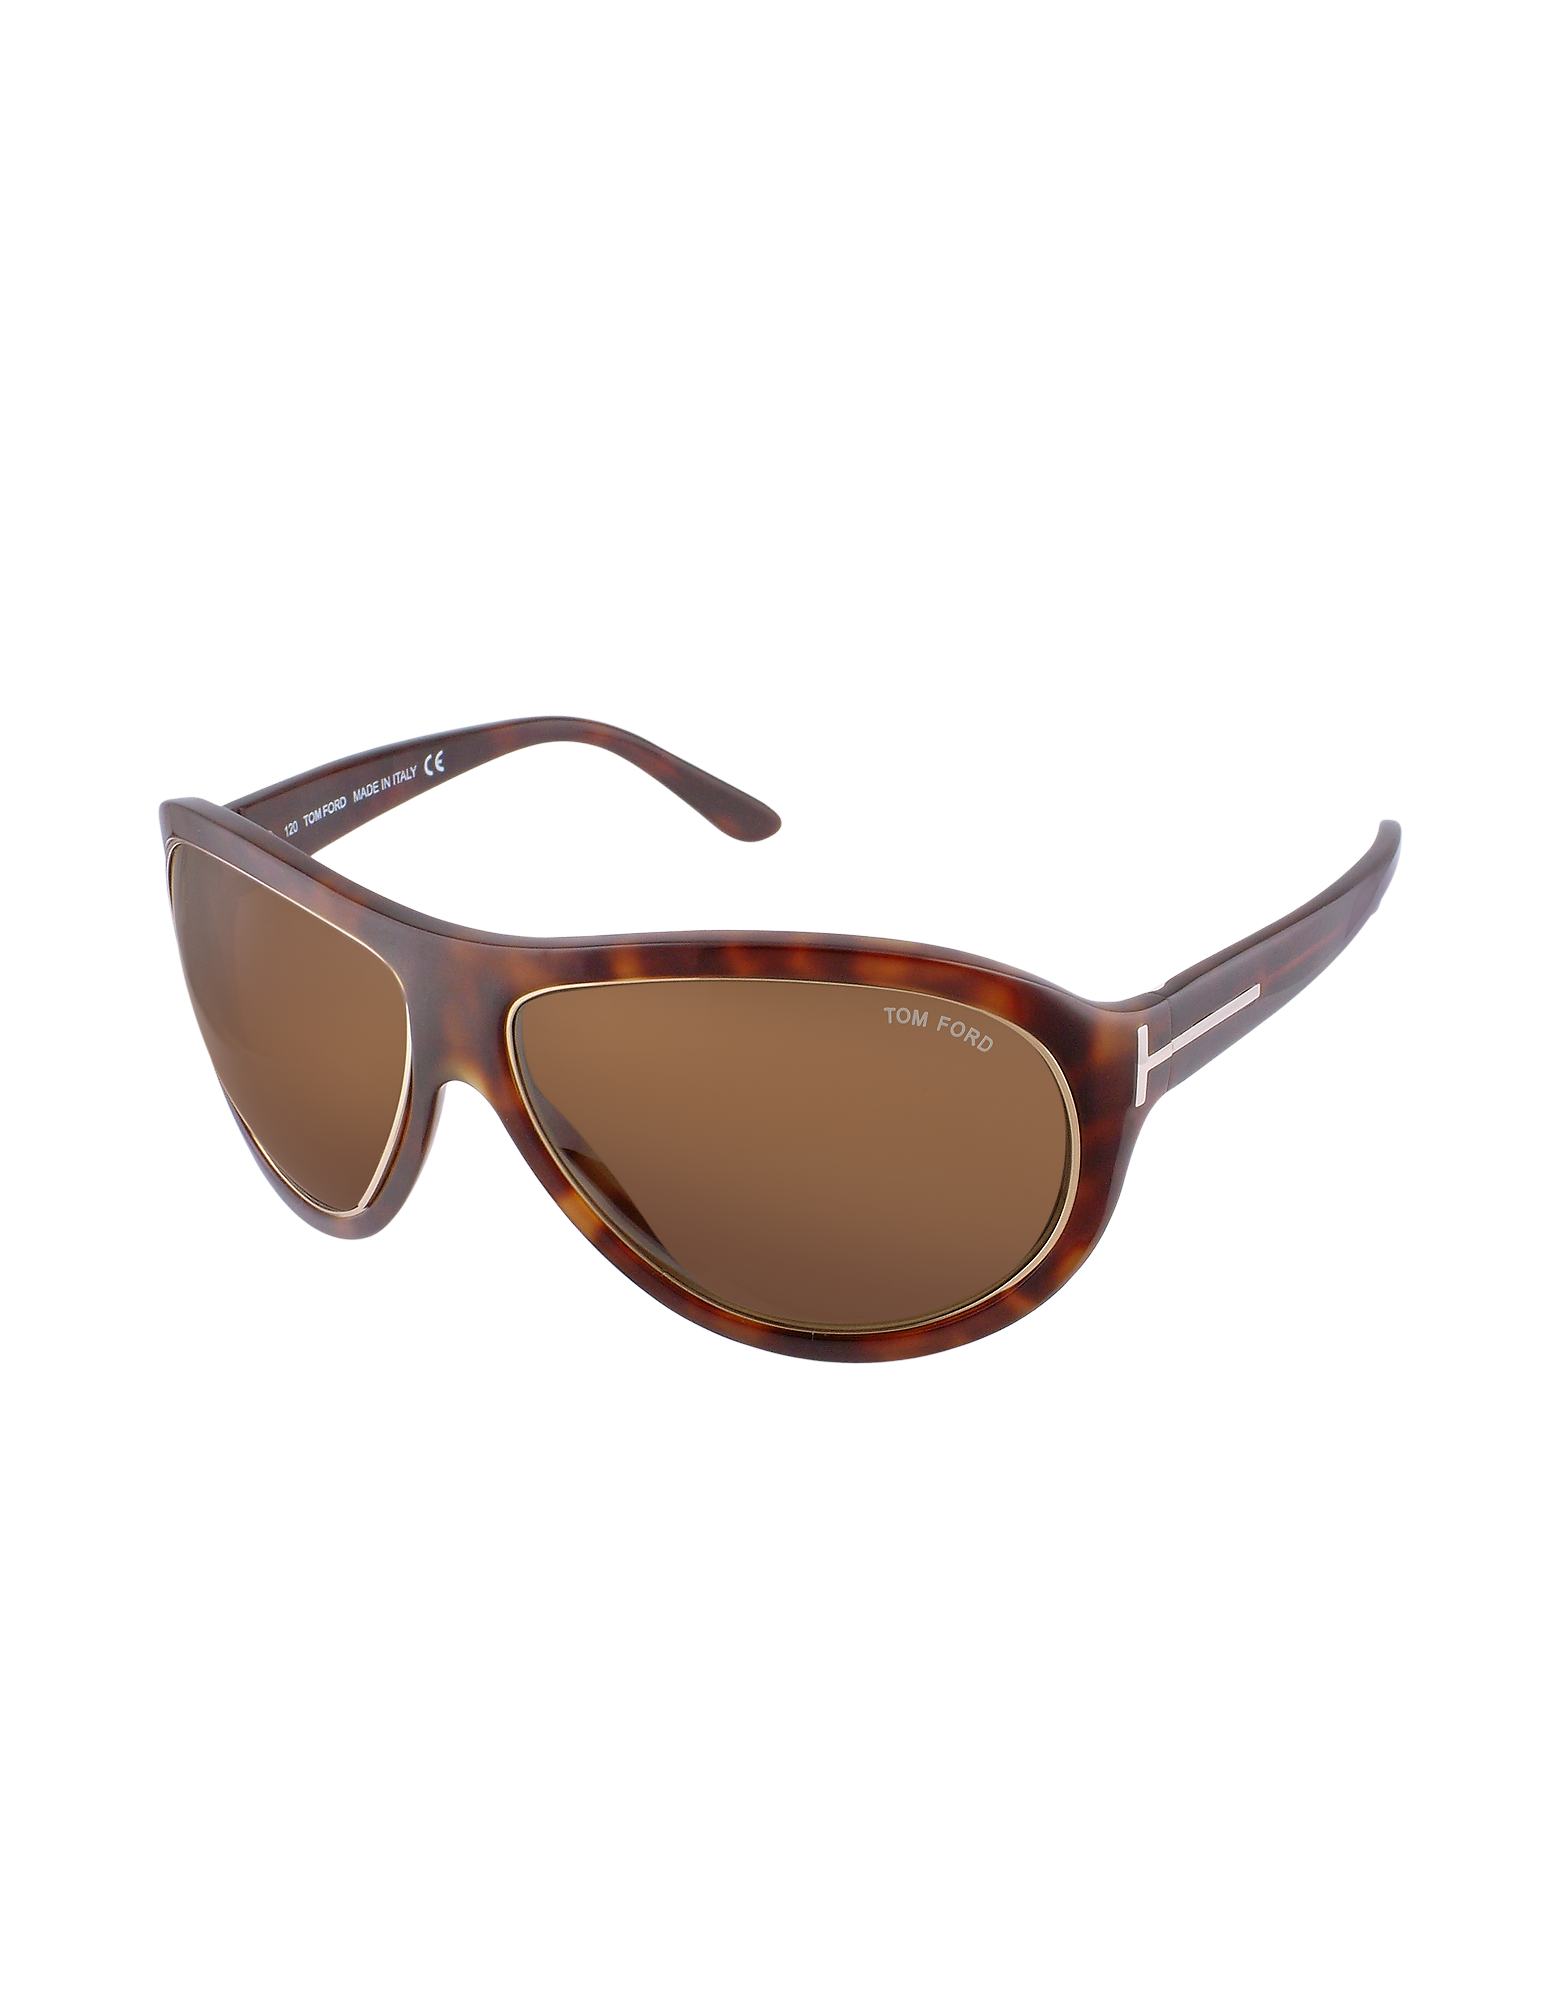 Image of Angus - Metal Trim Logoed Temple Teacup Sunglasses